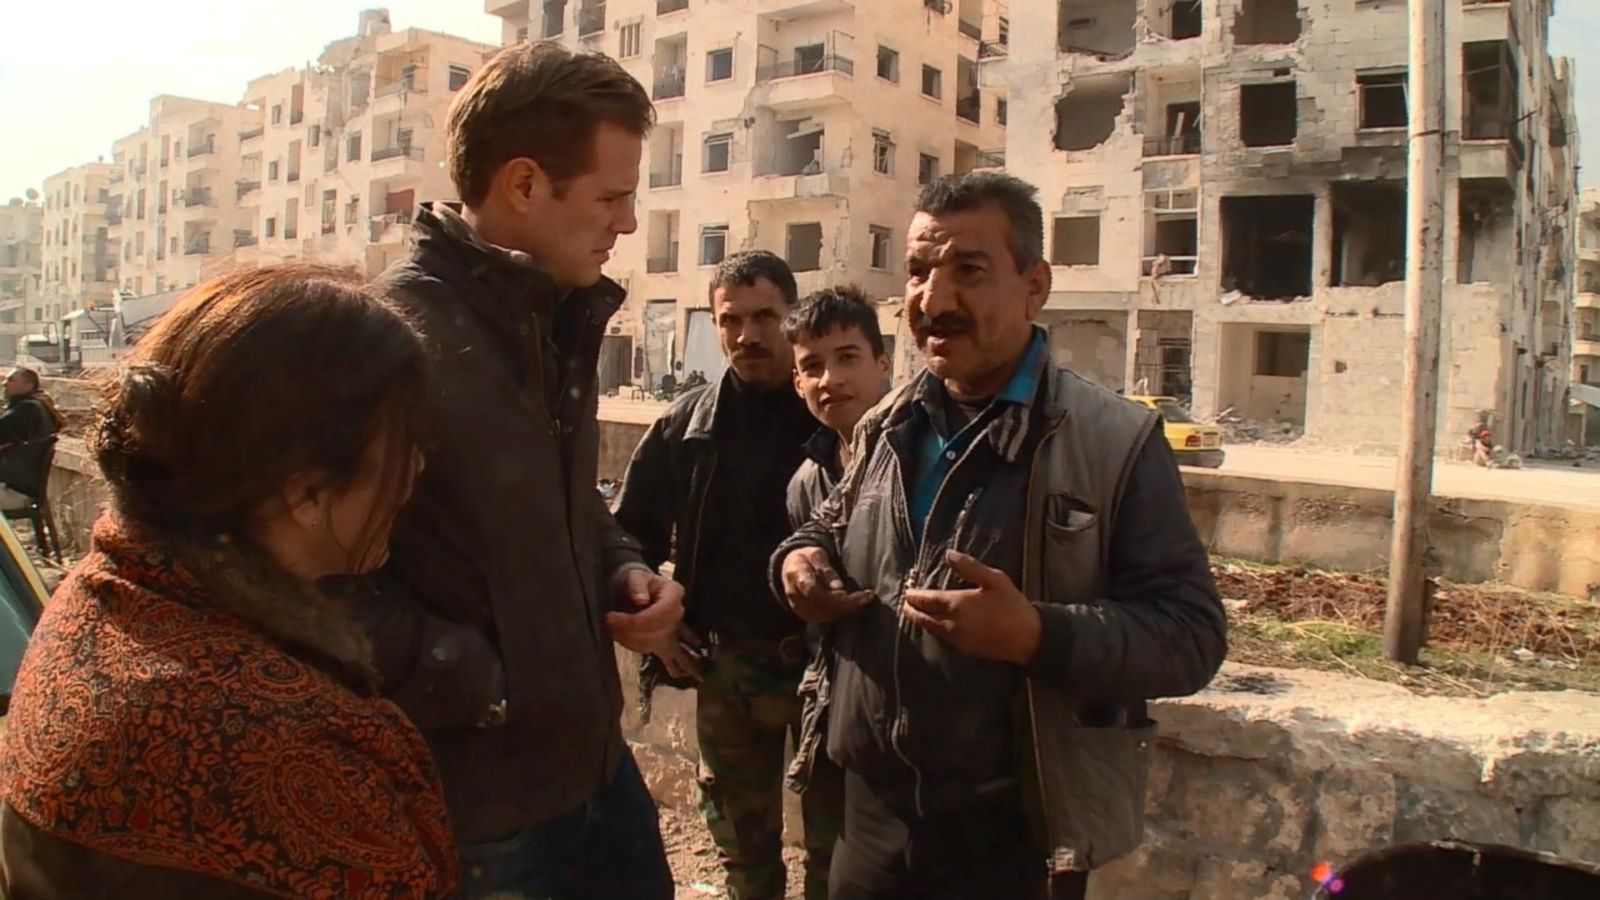 VIDEO; Inside Aleppo As Families Return Back to Their Neighborhood